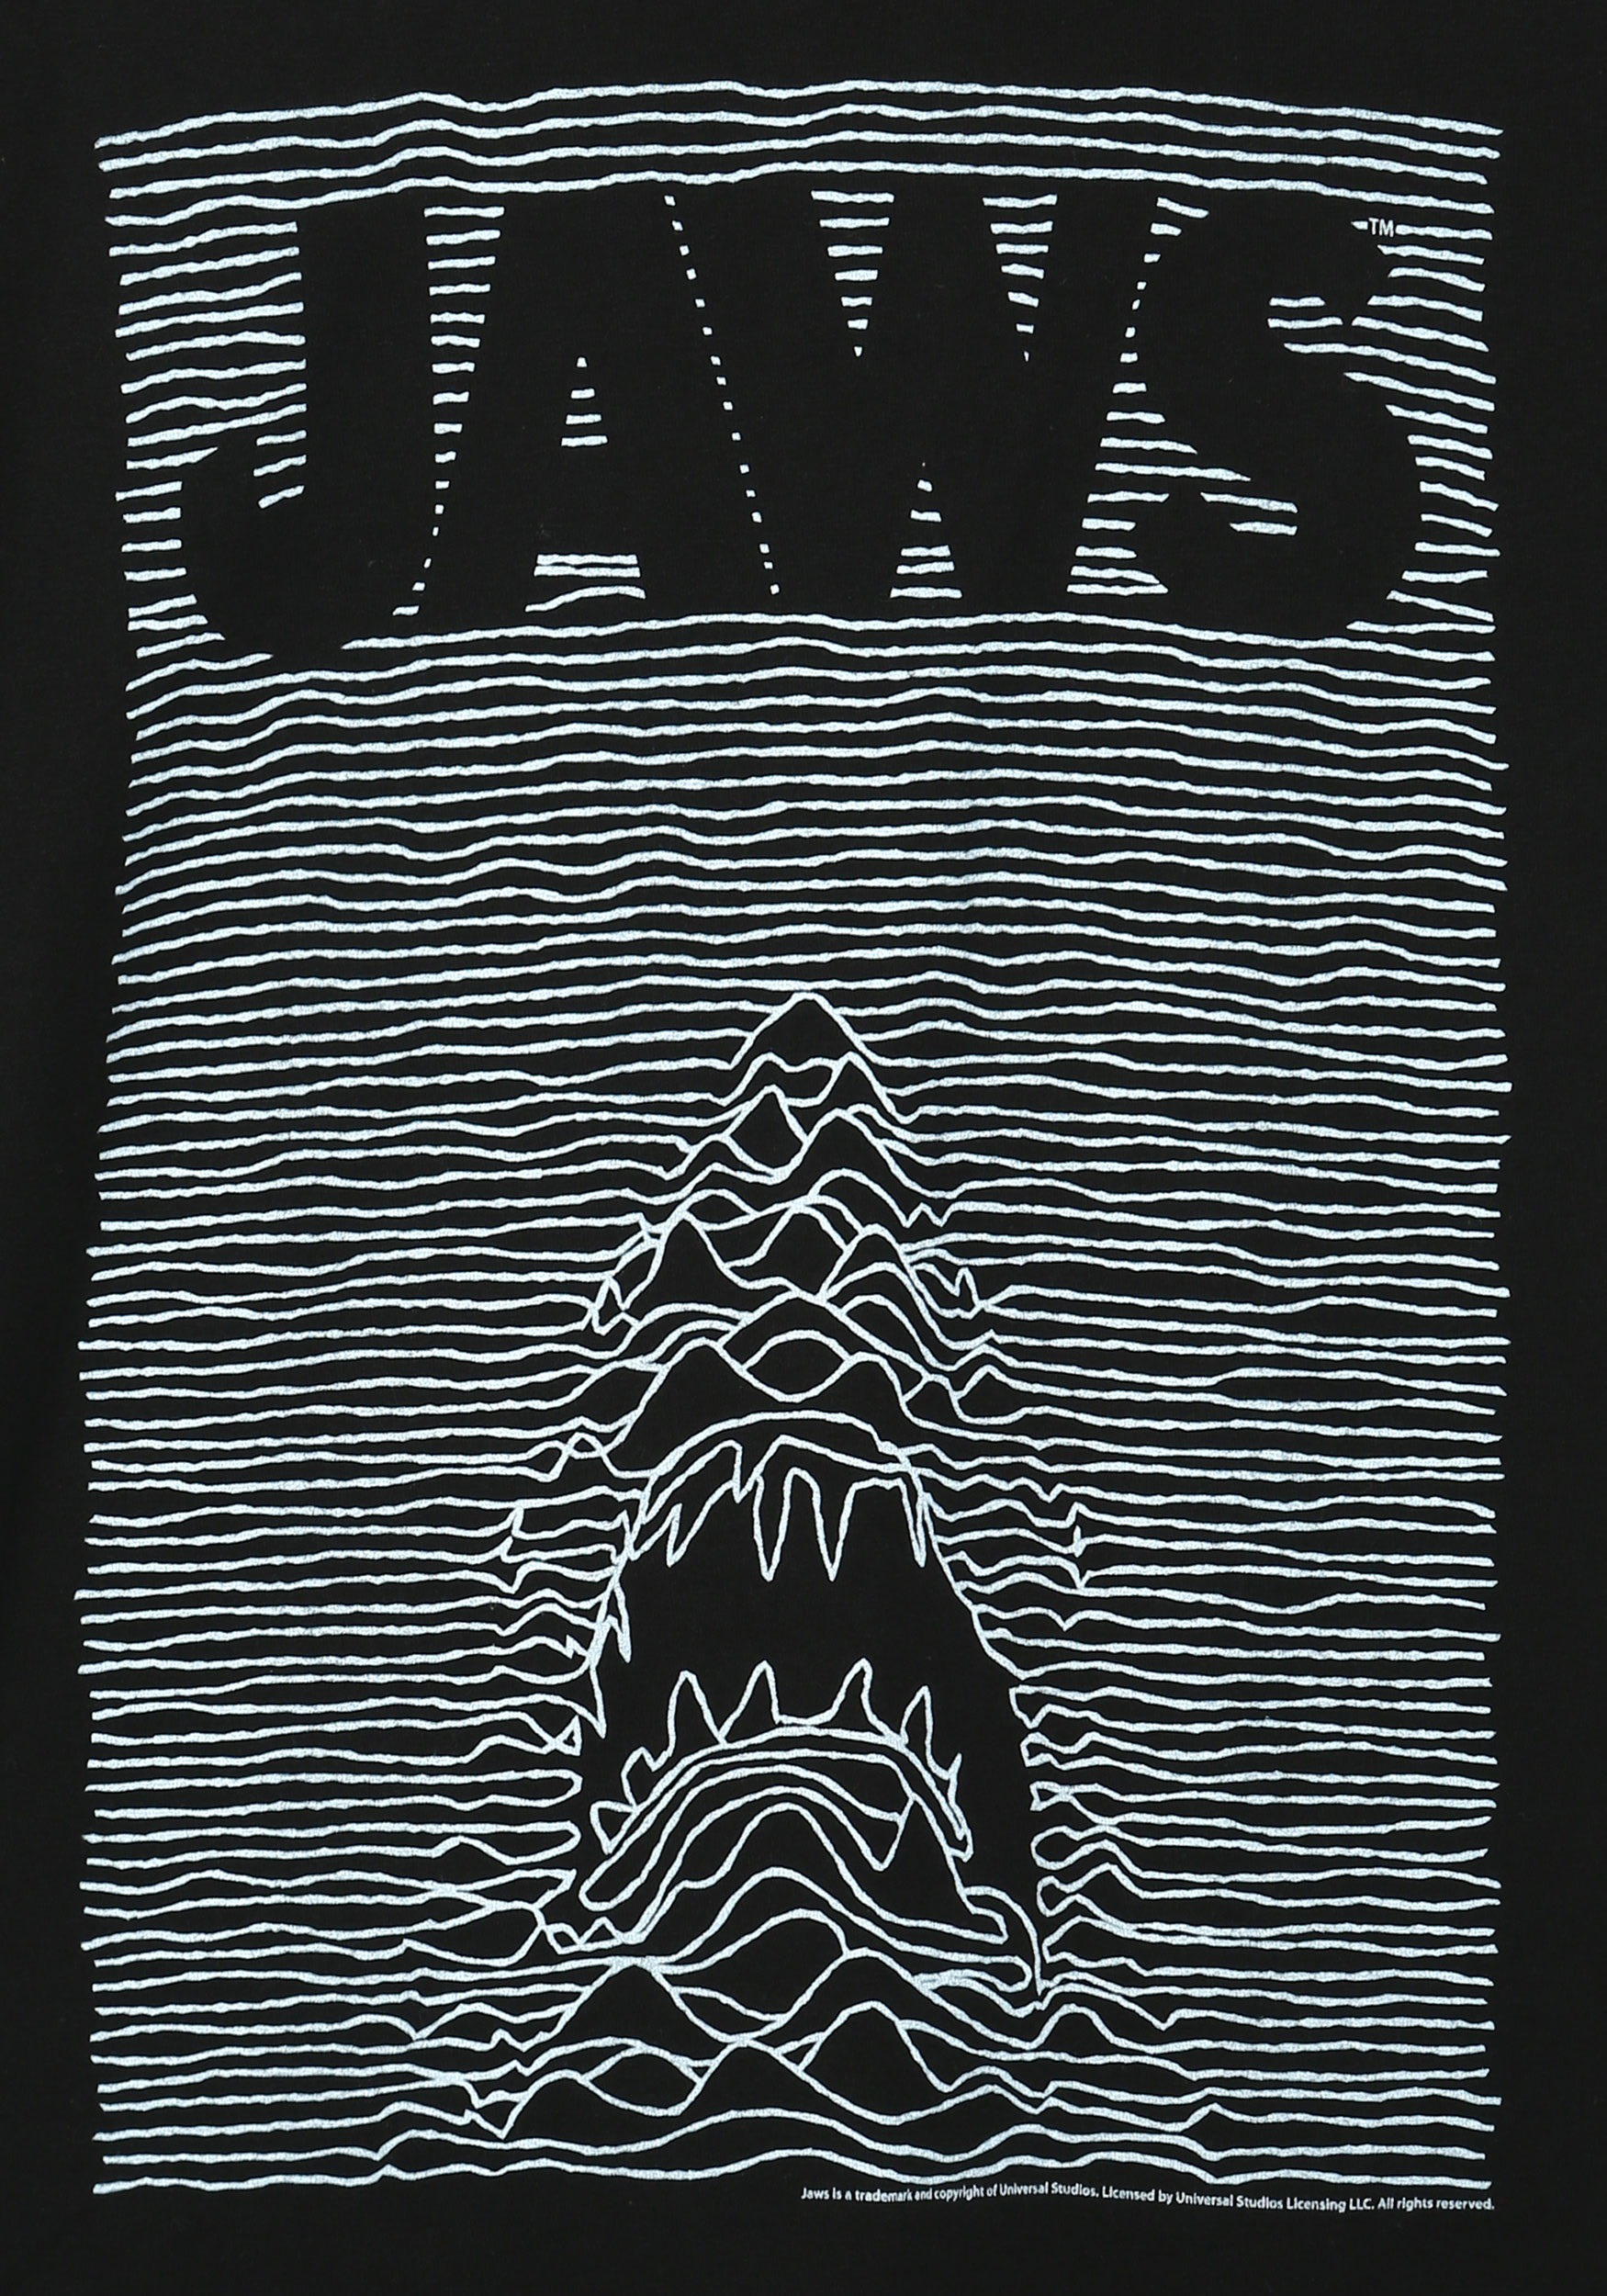 Jaw division t shirt 28 images jaw division t shirt for Clorador salino casero